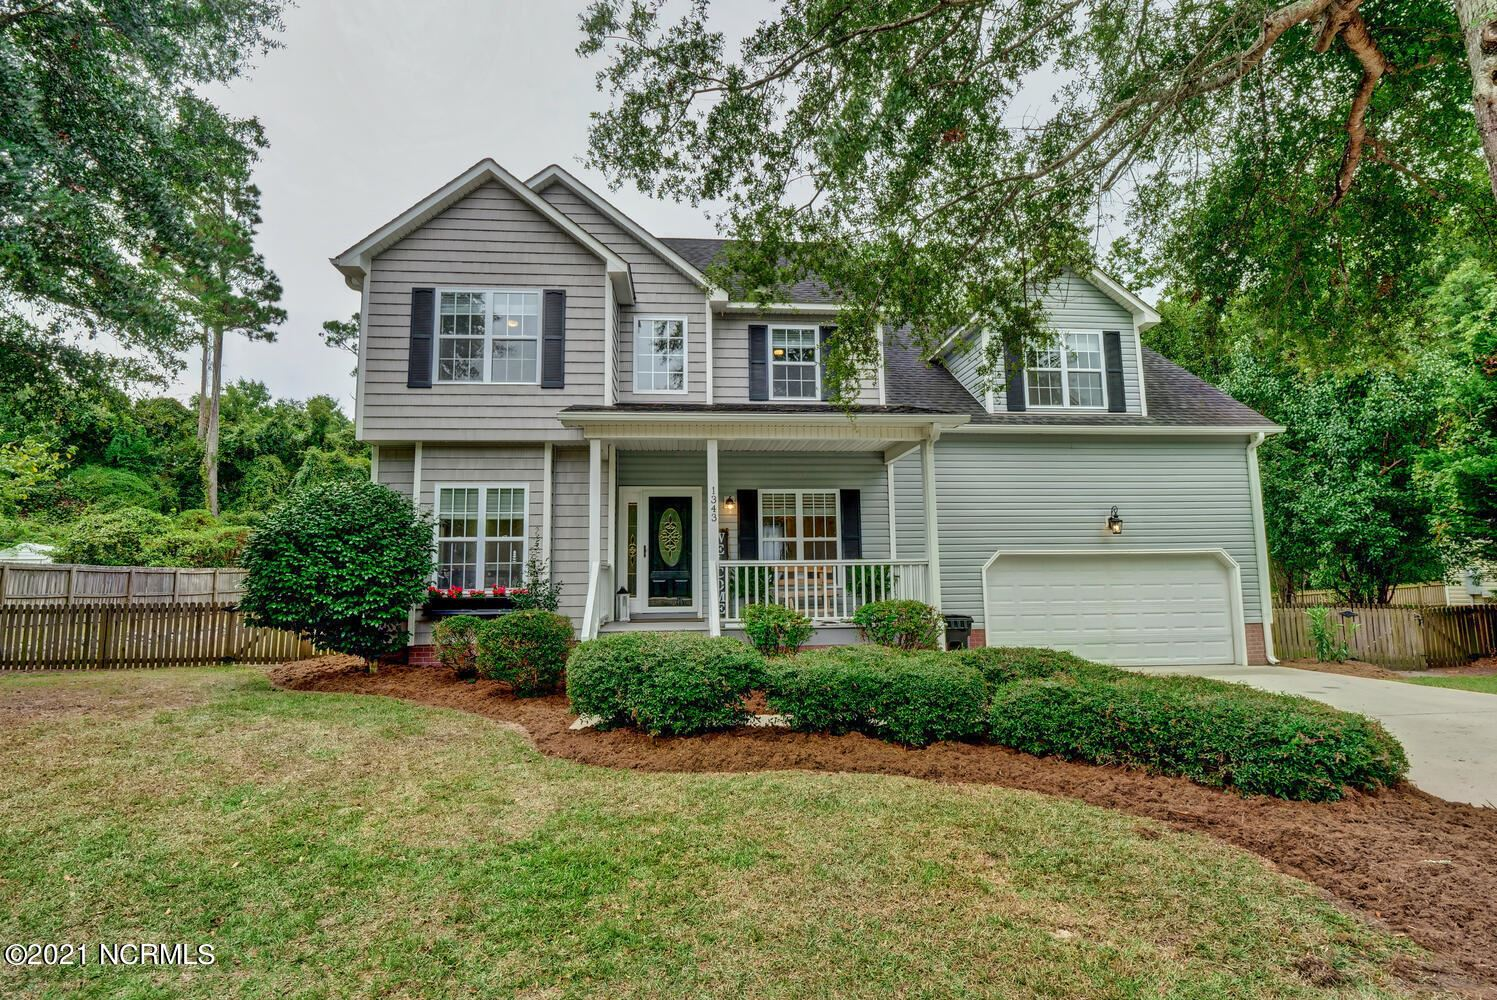 Photo of 1343 Chadwick Shores Drive, Sneads Ferry, NC 28460 (MLS # 100288151)